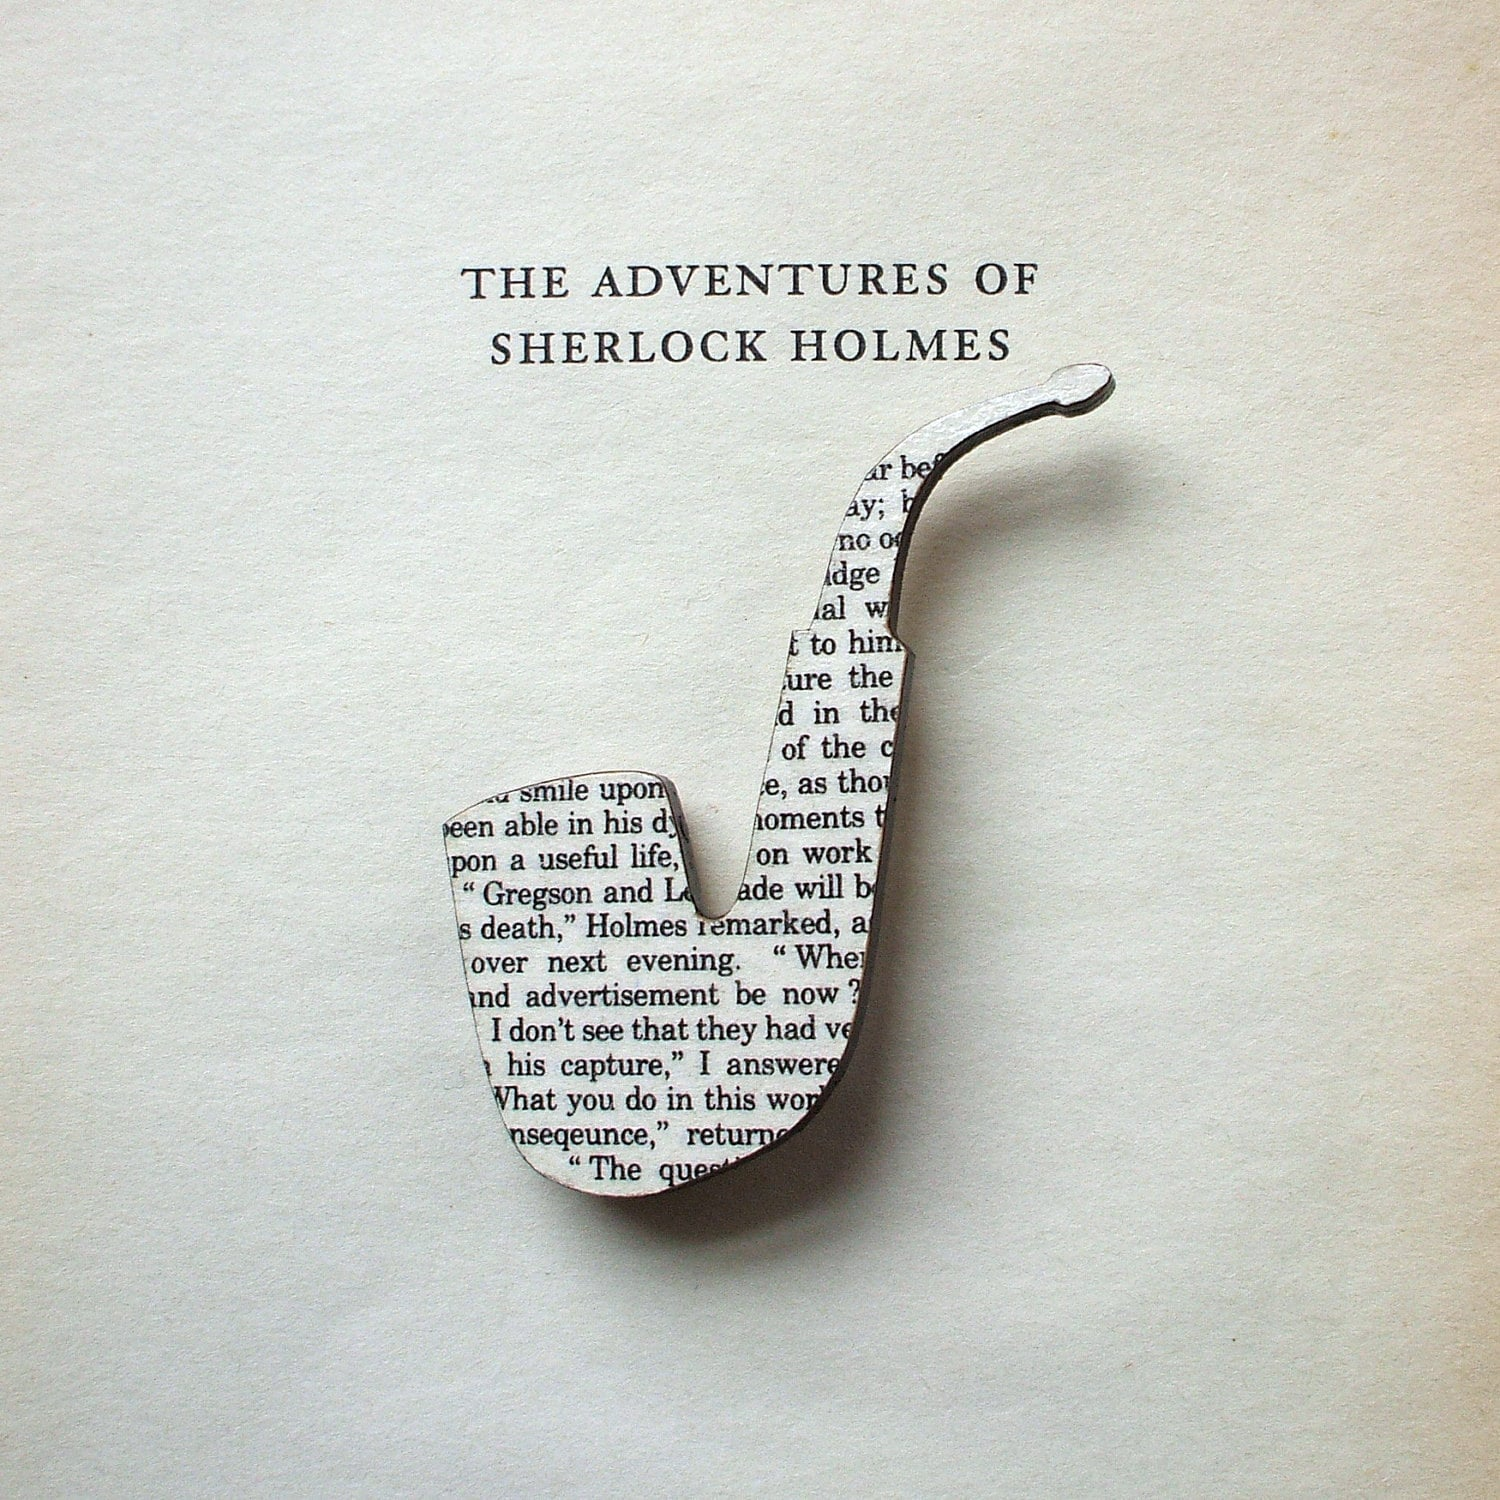 Sherlock Holmes Pipe brooch. Classic book brooches made with